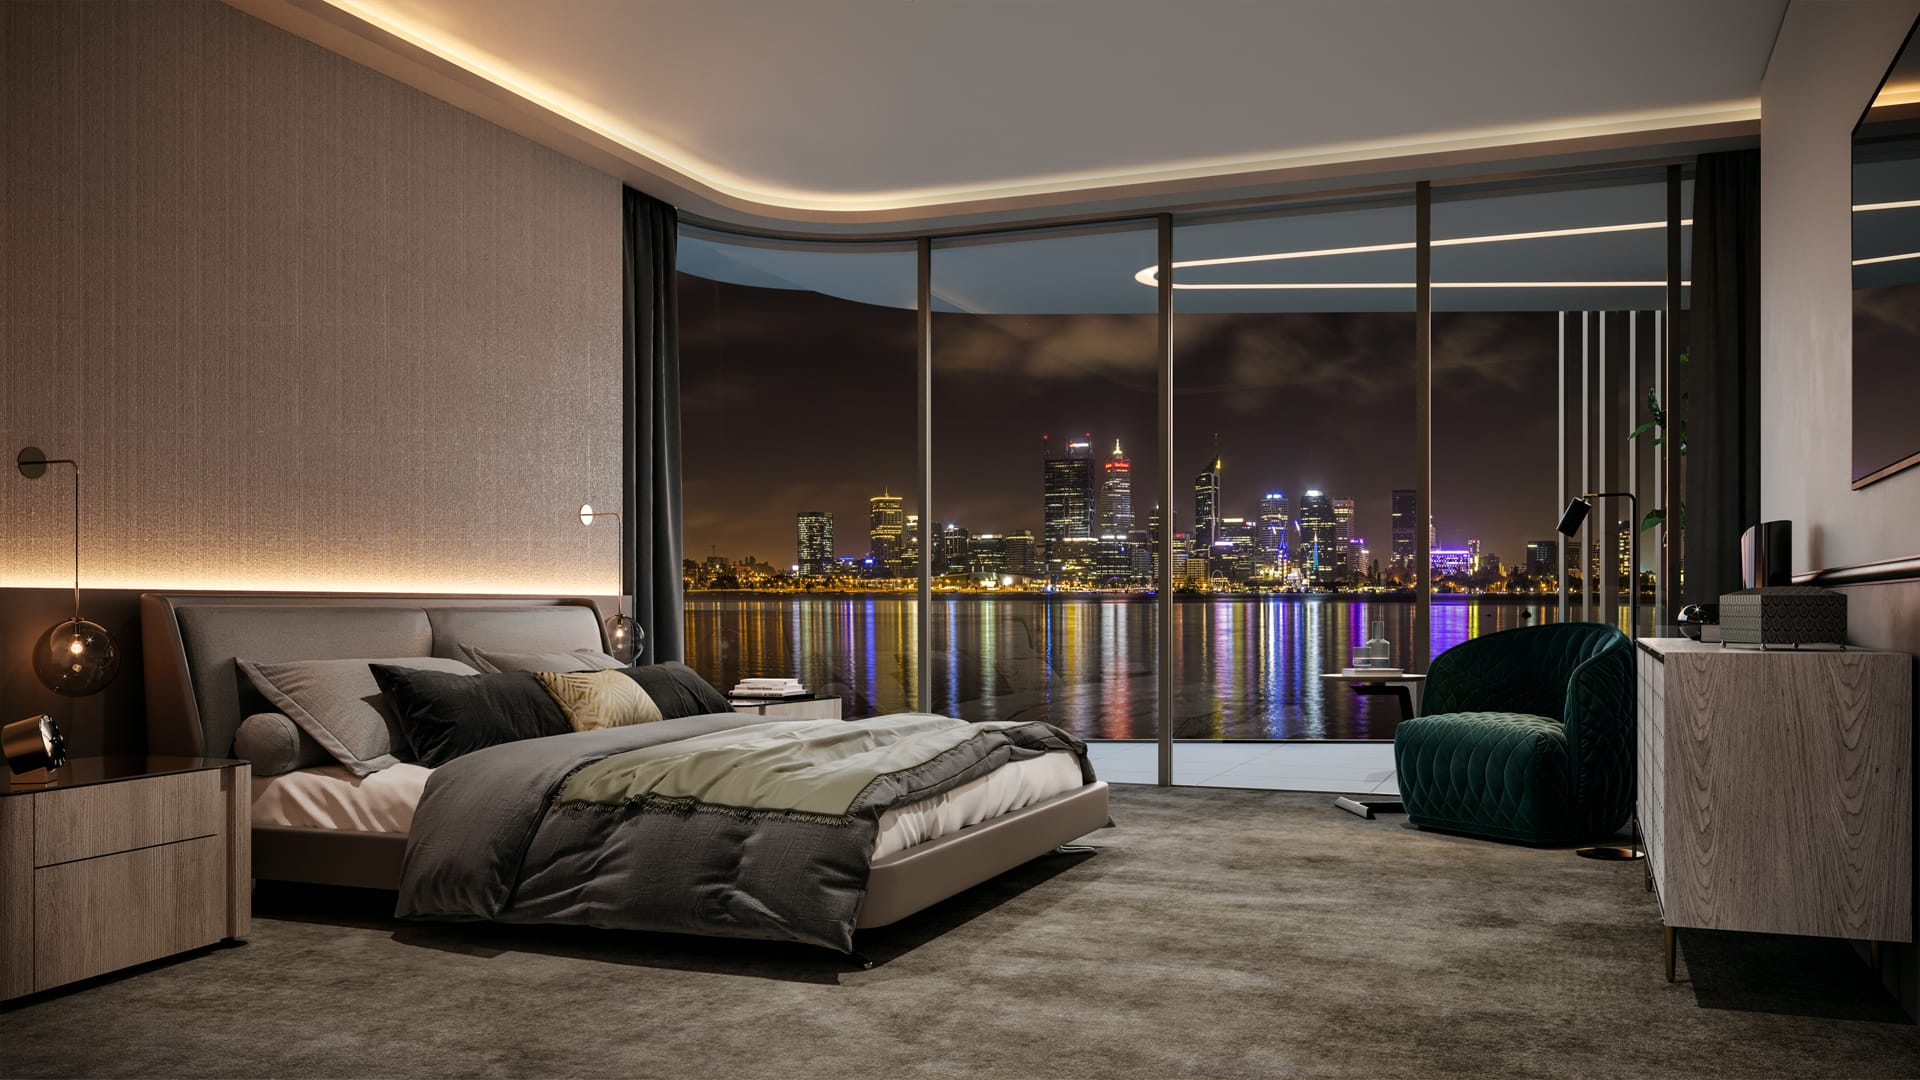 Bedroom at night